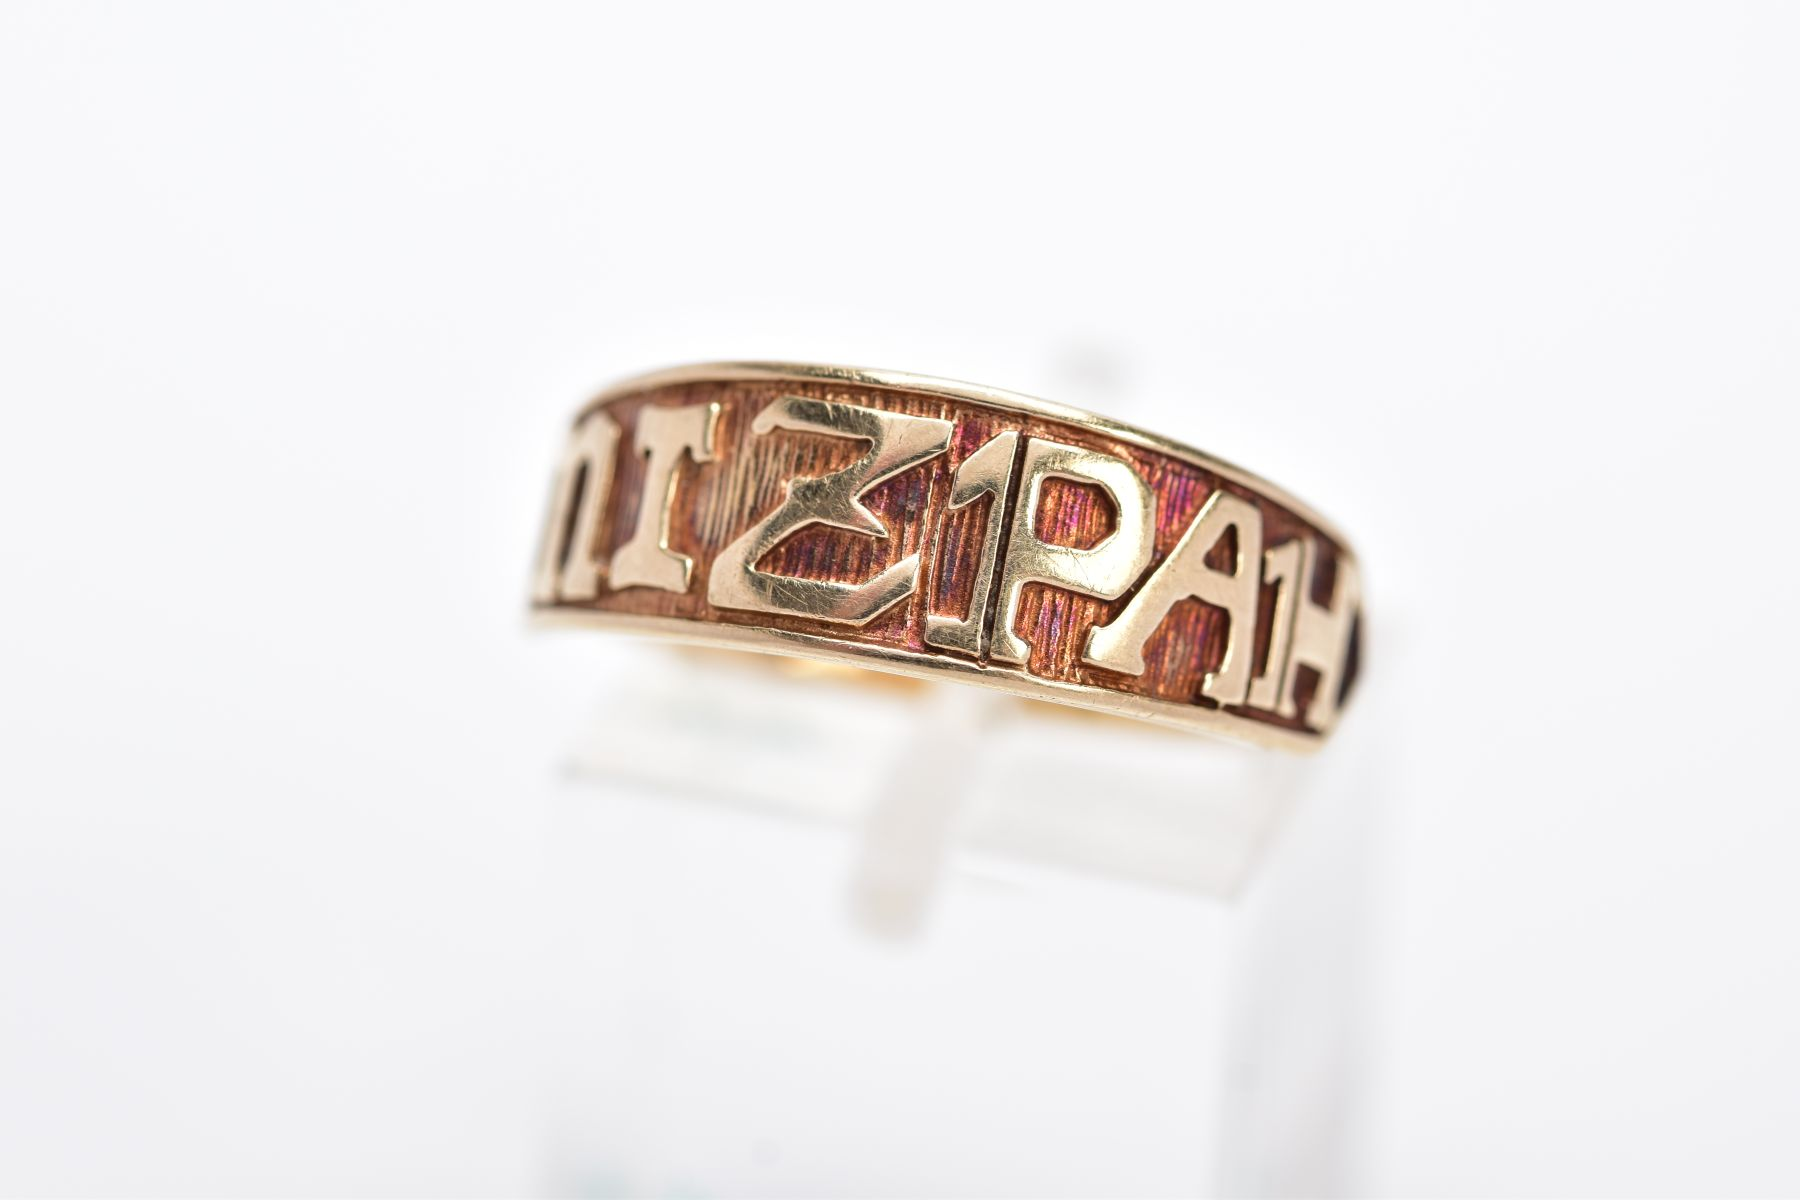 A 9CT GOLD 'MIZPAH' RING, inscribed 'Mizpah' band, with a textured background, hallmarked 9ct gold